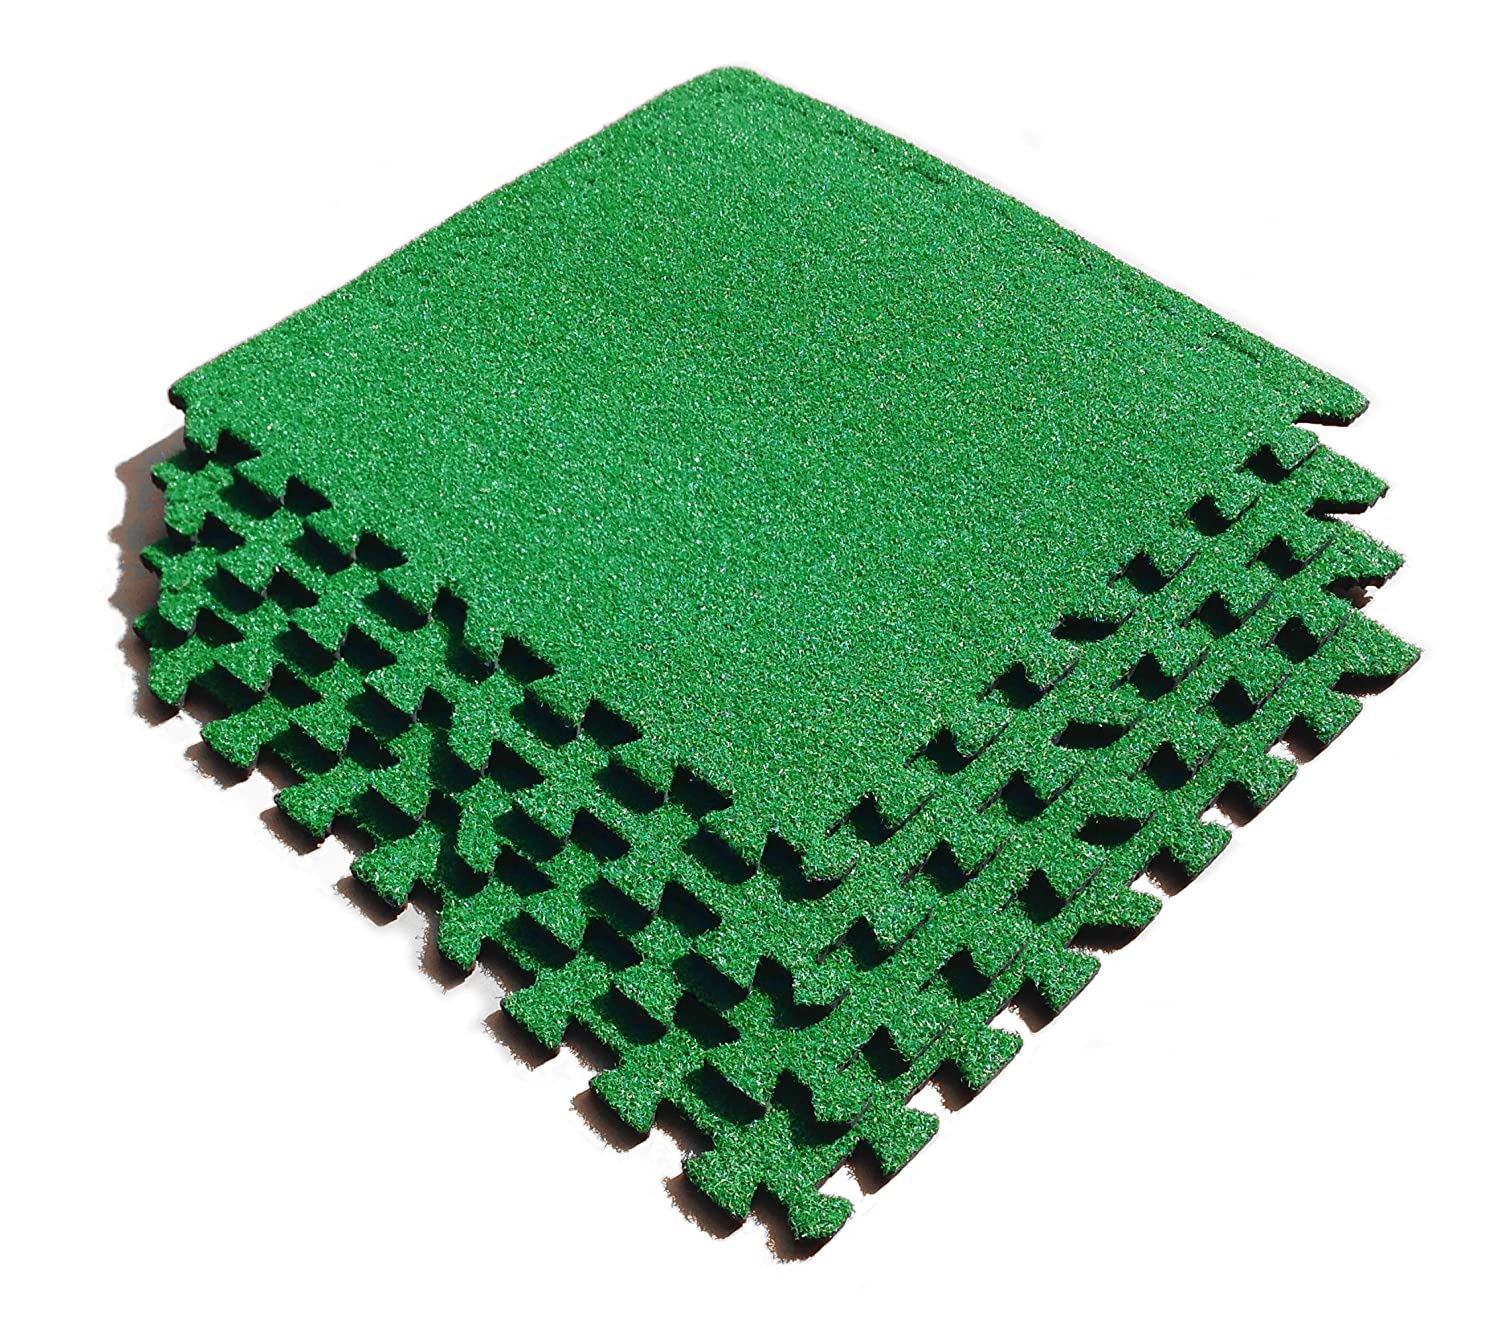 ASC Artificial Grass Tiles - EVA Tiles with Astroturf Style Covering - Football Room - Putting Green etc - 4Pk - 9 Ft Sq